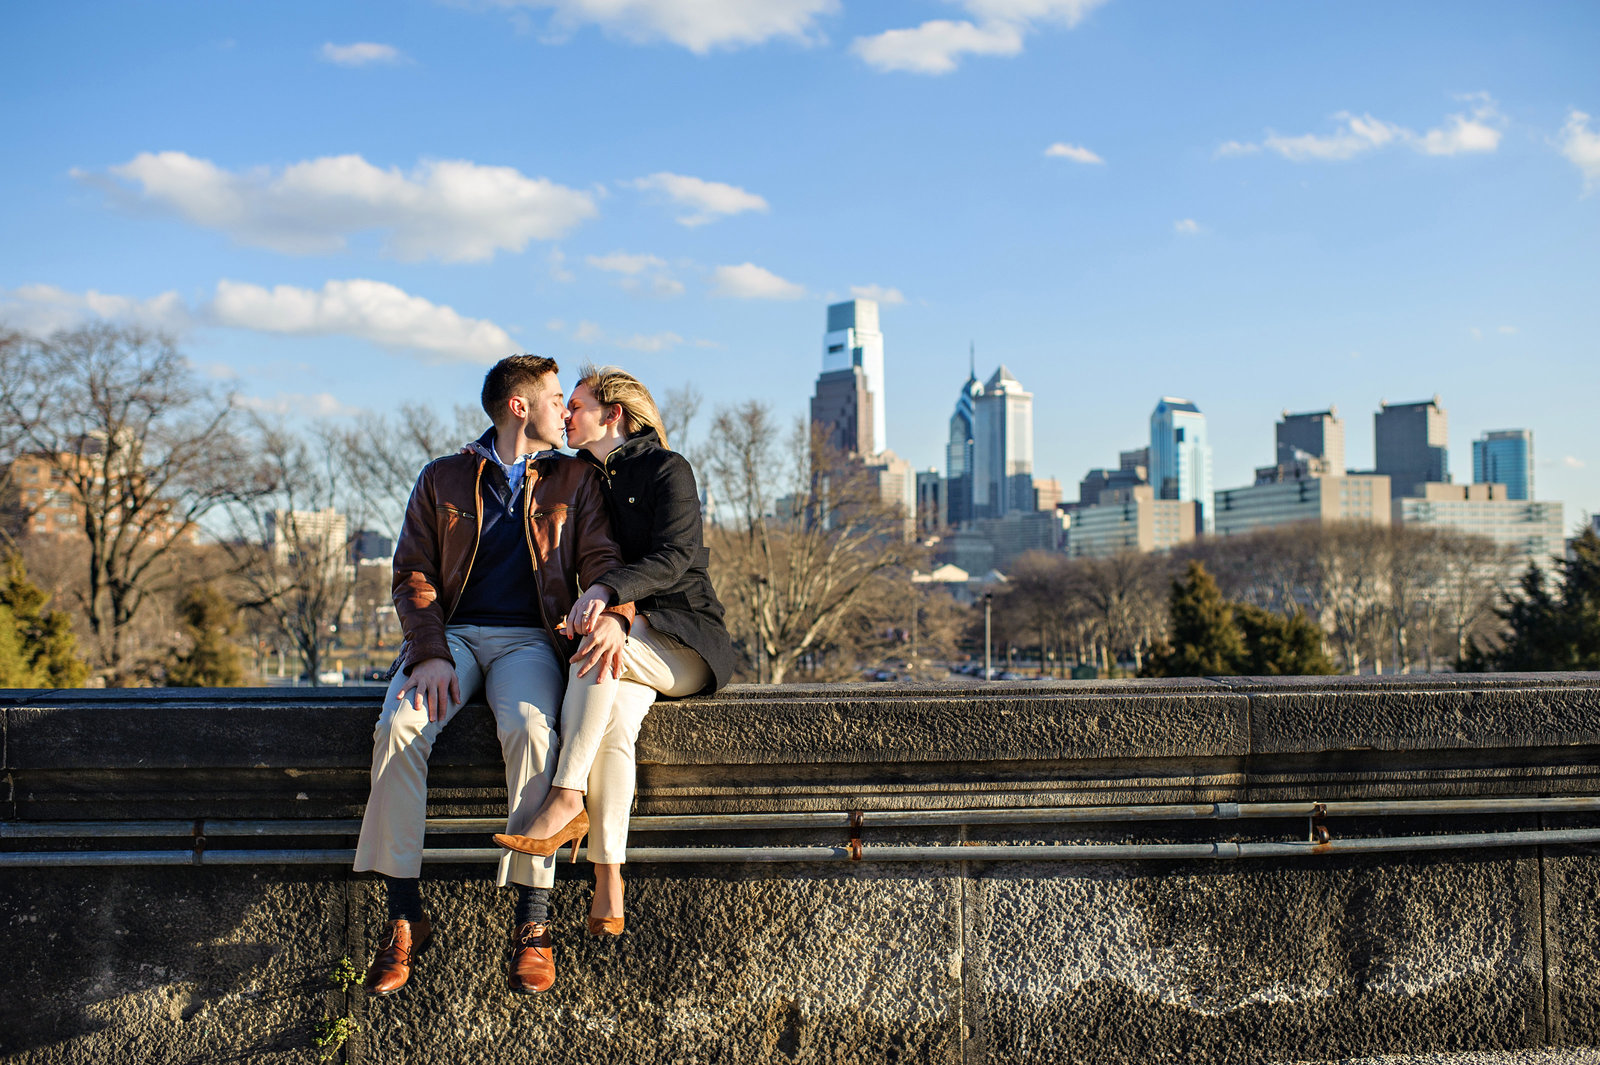 A couple in love sit on the wall of the Philadelphia Art Museum with the center city skyline behind them.